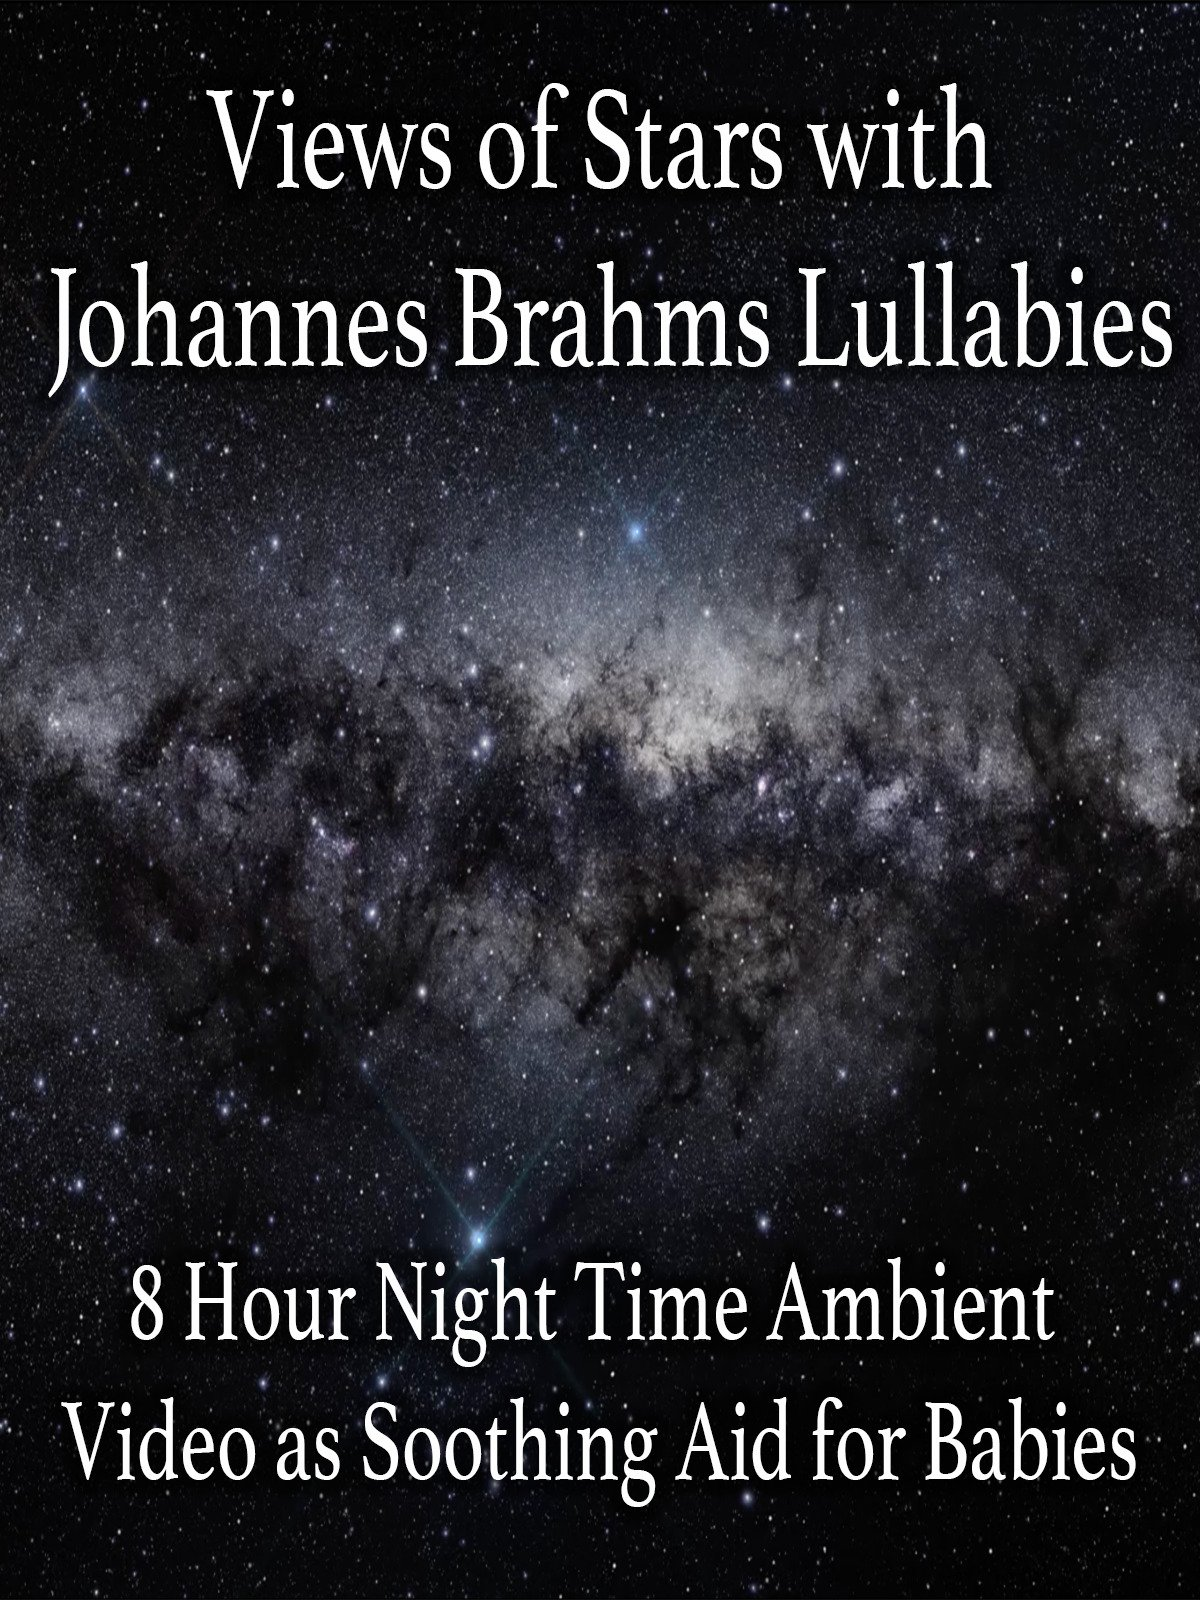 Views of Stars with Johannes Brahms Lullabies 8 Hour Night Time Ambient Video as Soothing Aid for Babies